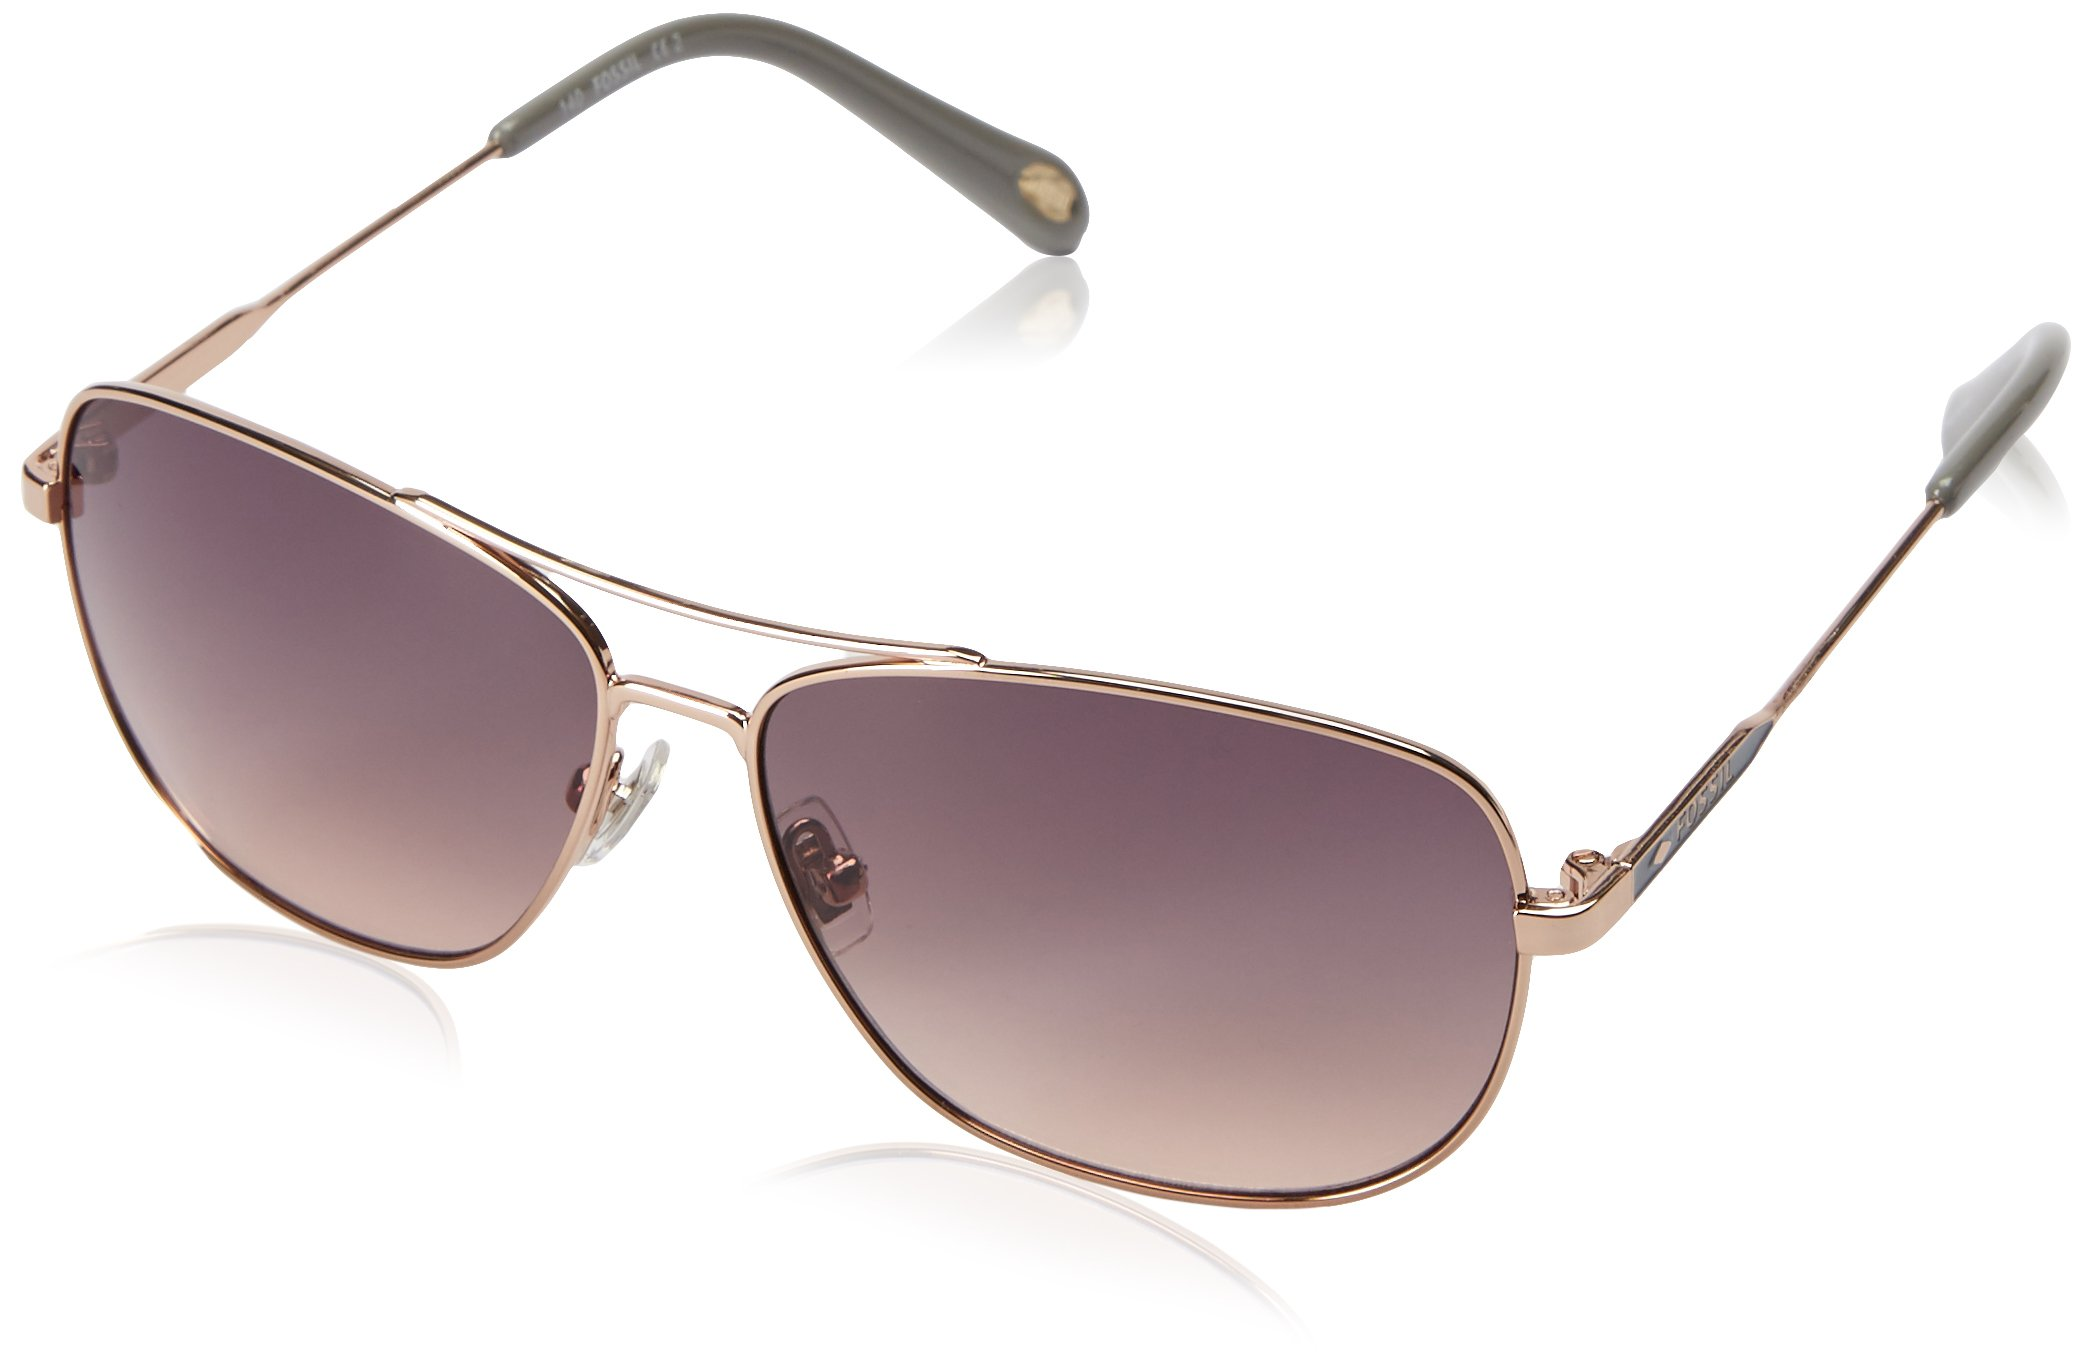 Fossil Fos3058s Square Sunglasses, Rose Gold/Smoke Tan, 58 mm by Fossil